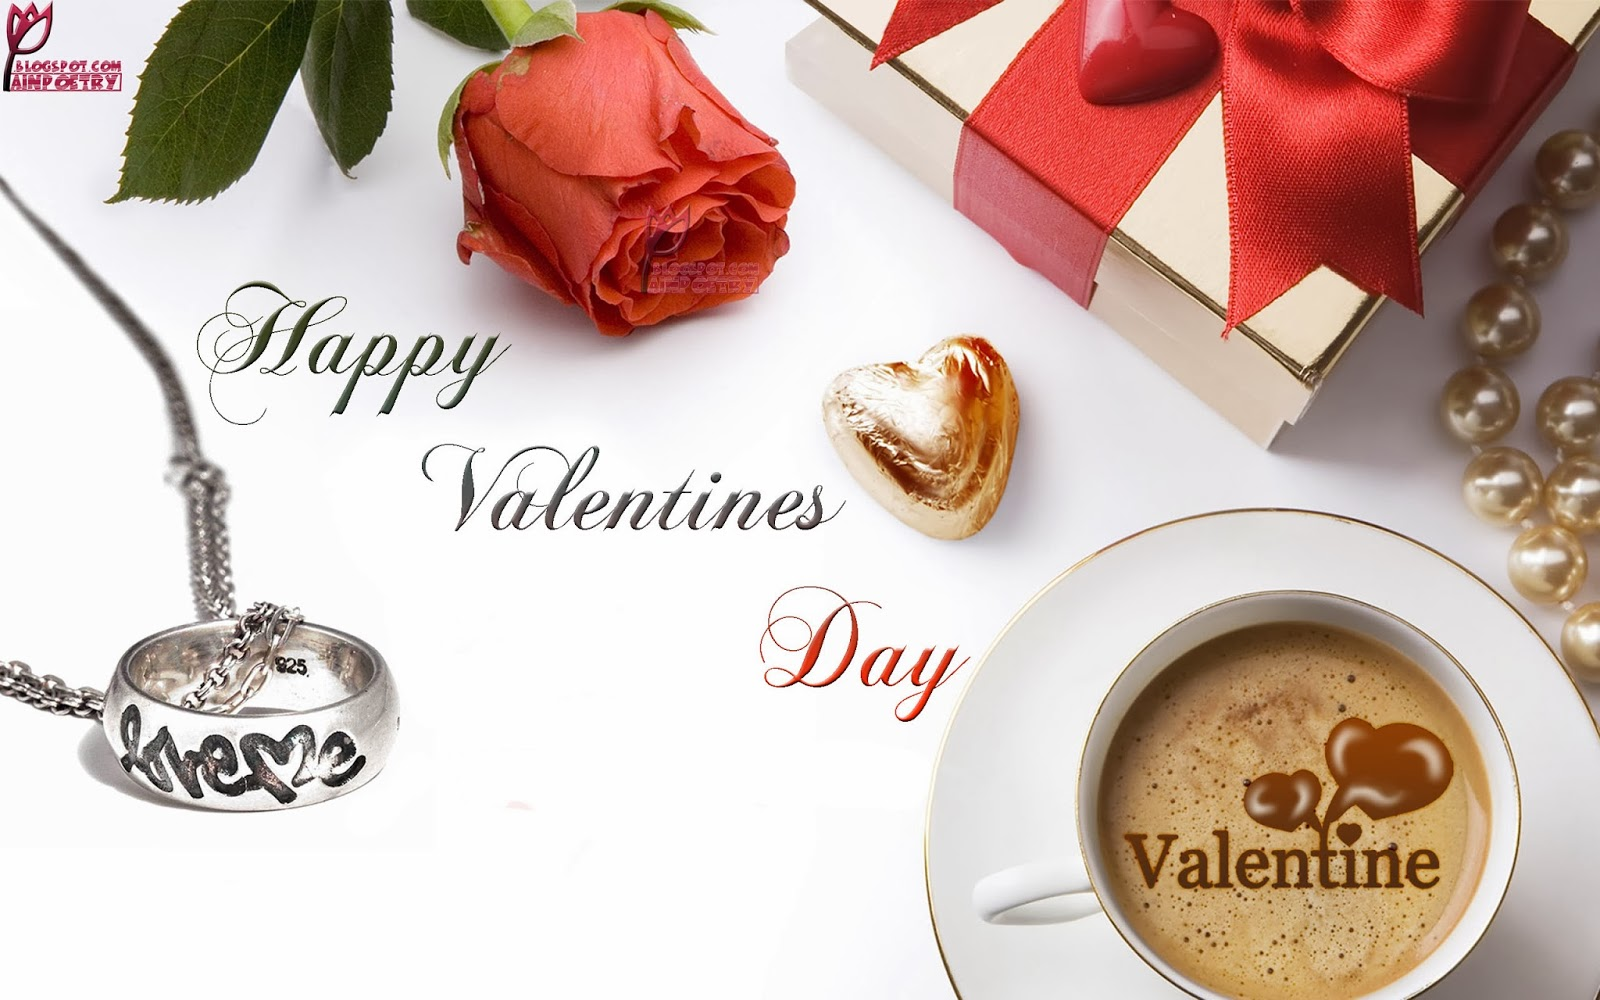 Happy-Valentines-Day-Wishes-Wallpaper-With-Flower-Gift-Tea-And-A-Heart-Image-HD-Wide